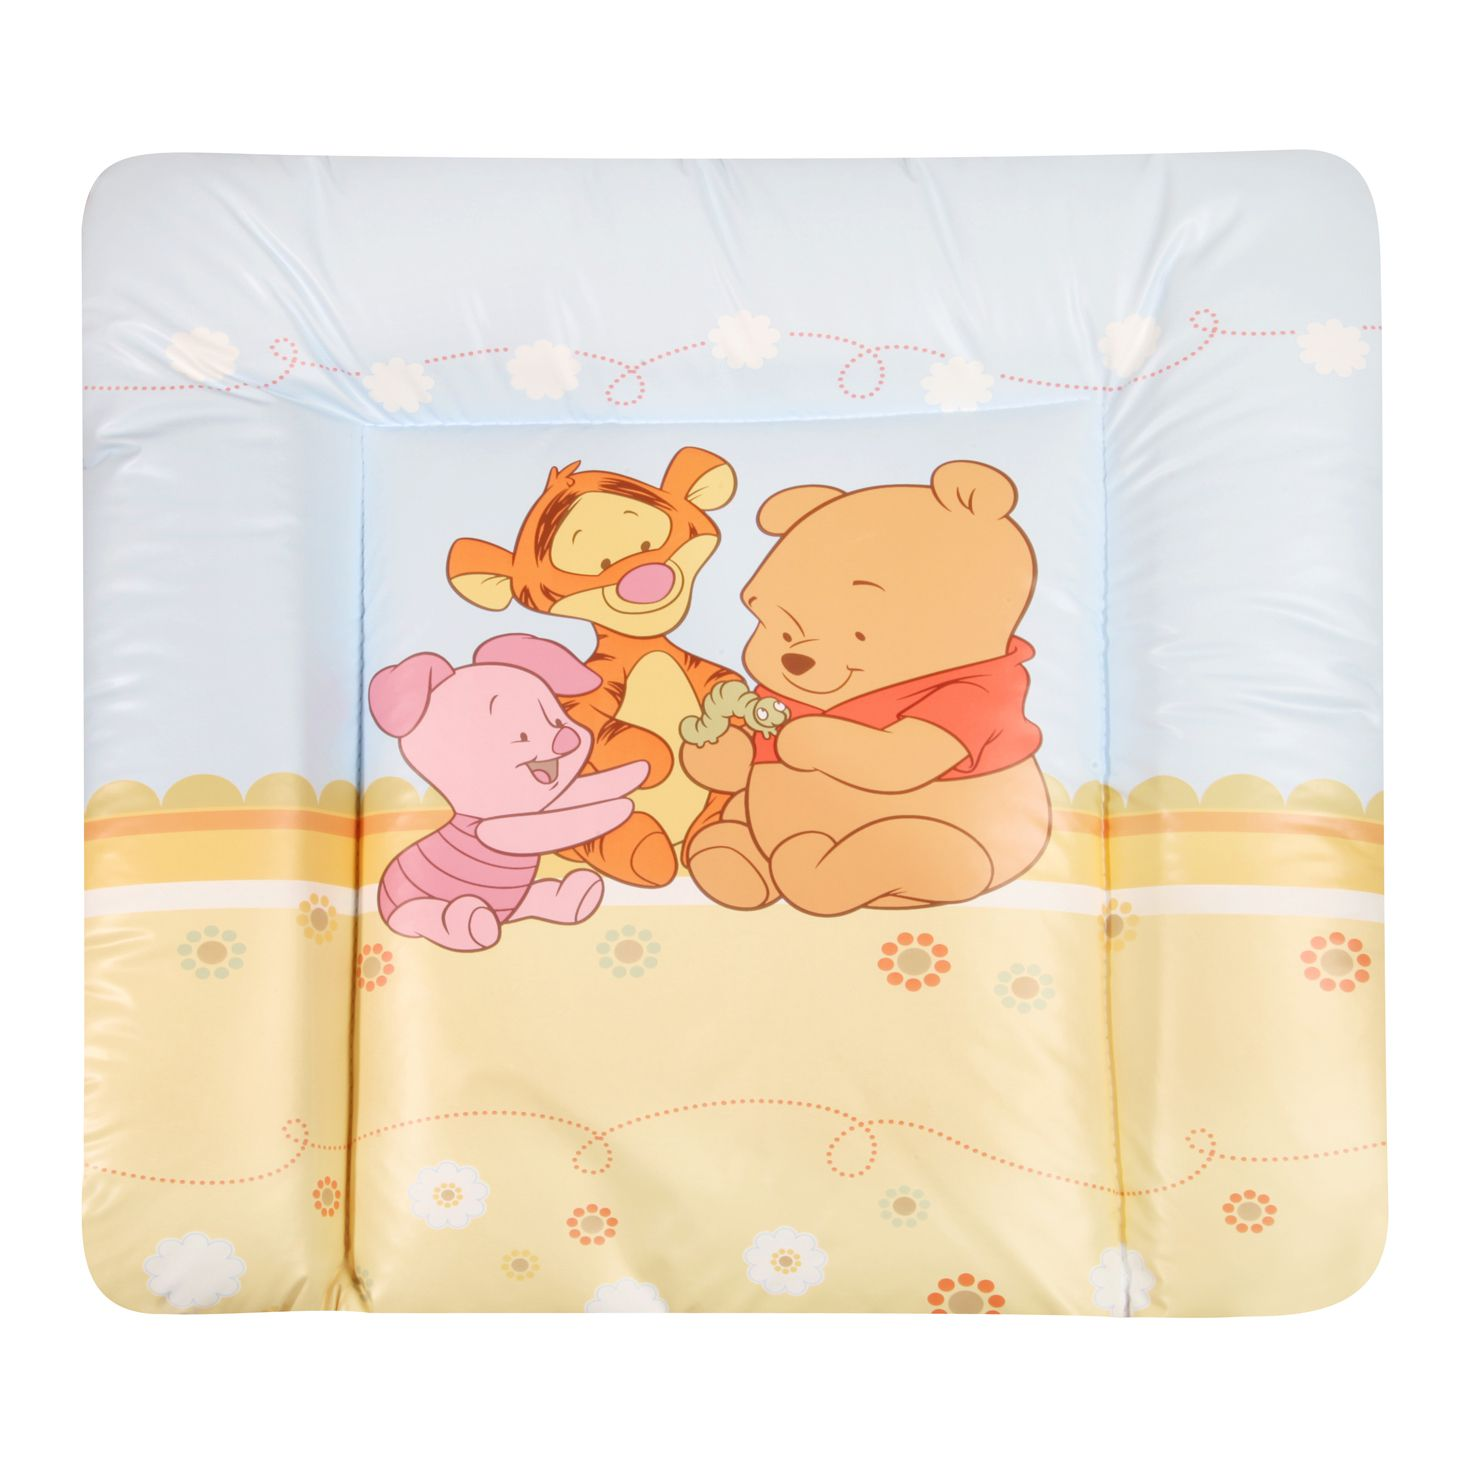 Wickelauflage Baby Pooh and Friends (Folie) - Blau/Bunt mit Motiven